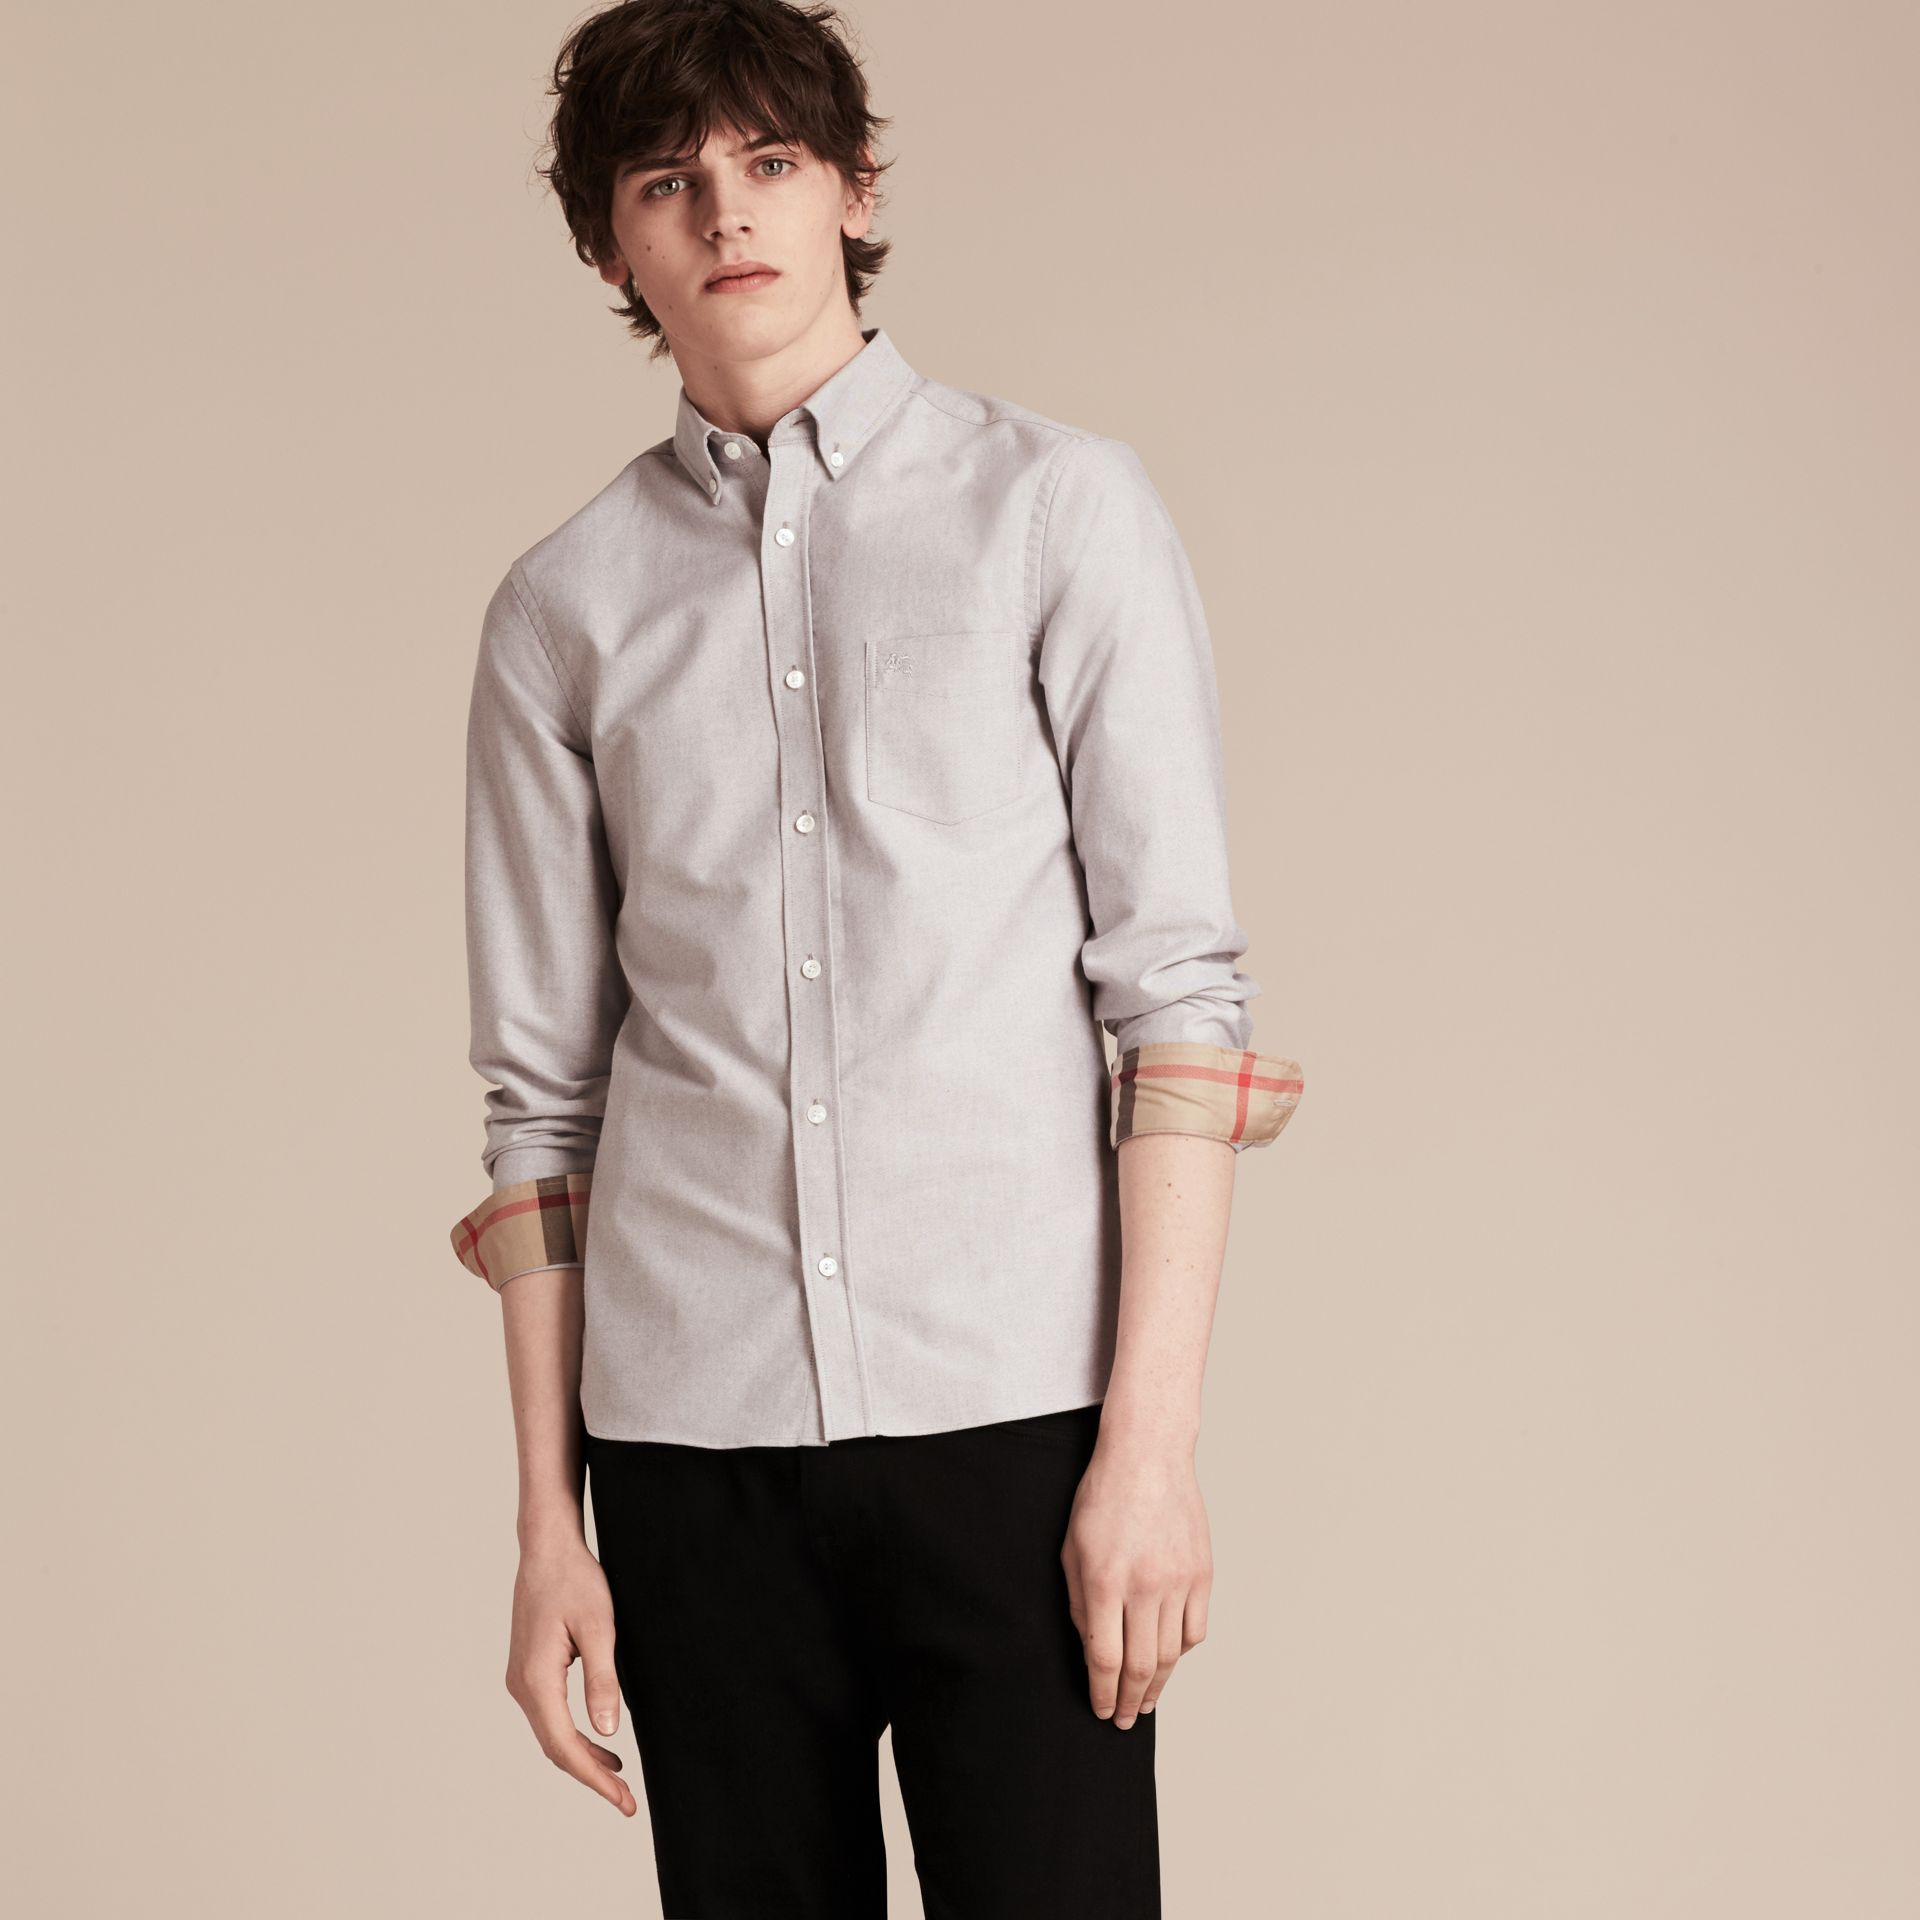 Cotton Oxford Shirt in Charcoal - Men | Burberry - gallery image 4